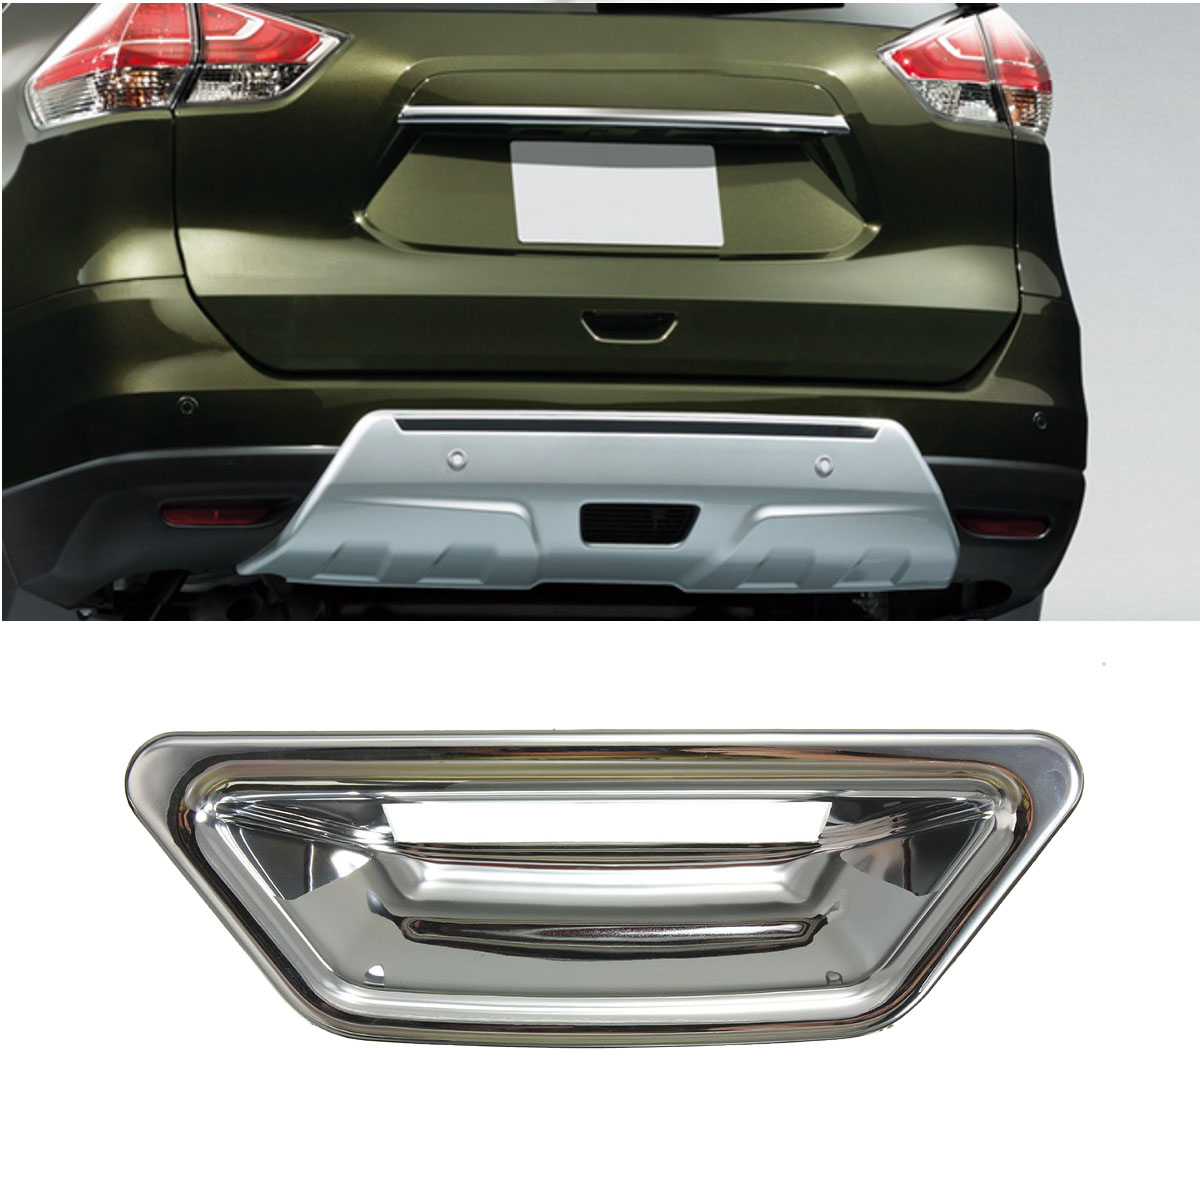 Car Rear <font><b>Door</b></font> Bowl <font><b>Handle</b></font> Cover Trim Chrome for <font><b>Nissan</b></font> Rogue <font><b>X</b></font>-<font><b>Trail</b></font> 2014 2015 2016 2017 Car Exterior Parts image